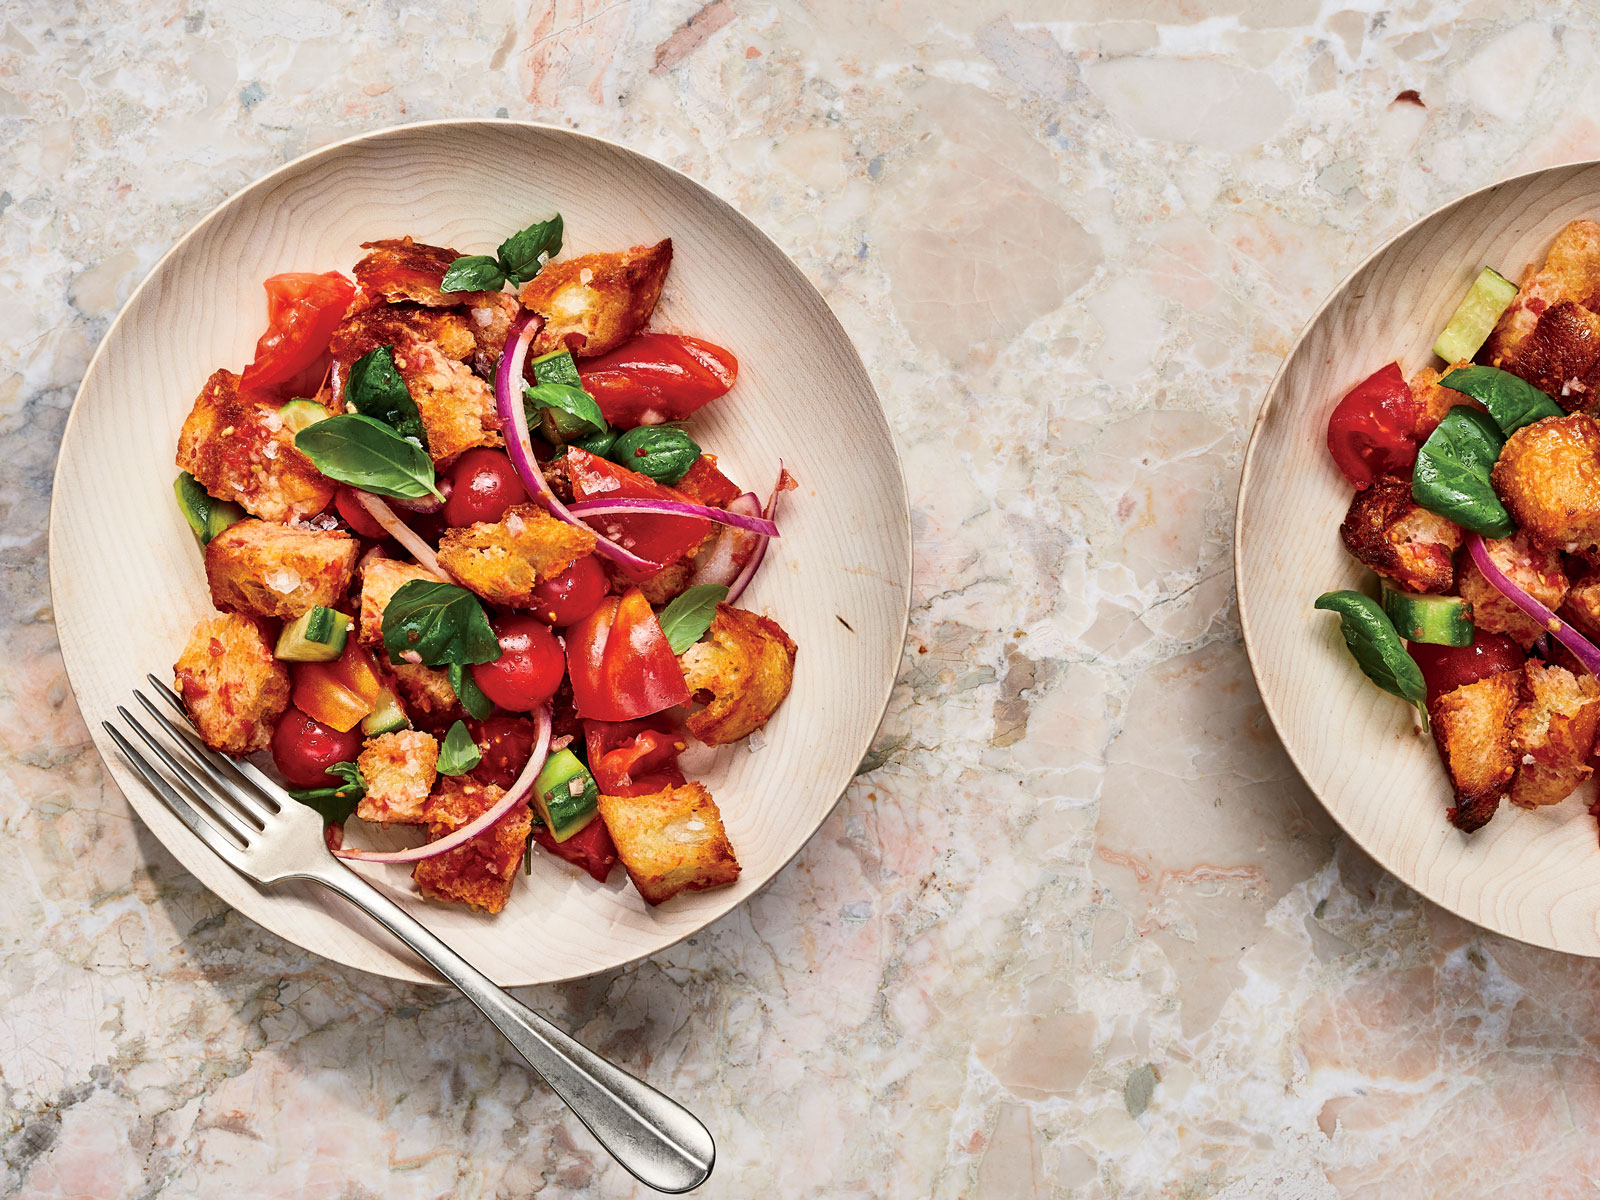 Tomato, Basil, and Cucumber Panzanella with Grated Tomato Balsamic Vinaigrette